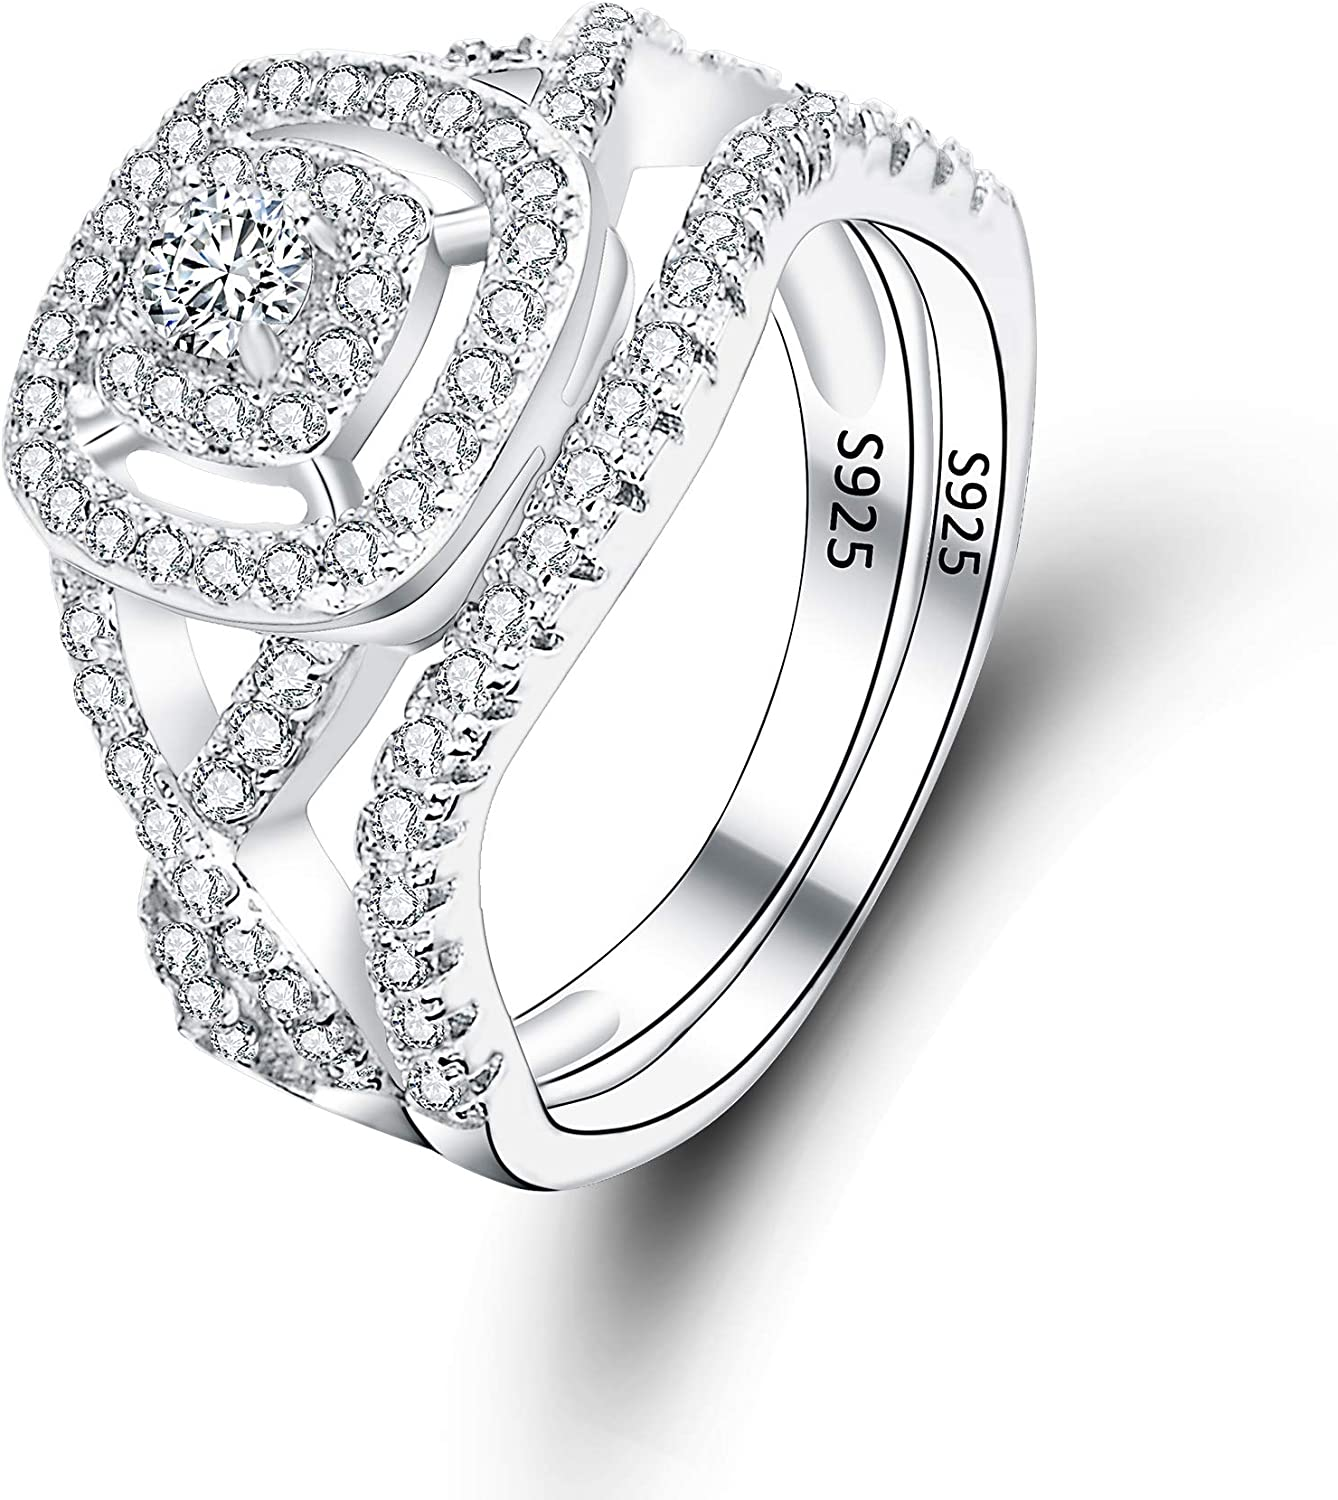 EVER High material FAITH 925 Sterling Silver Elegant CZ New arrival Enga Wedding Pave Full